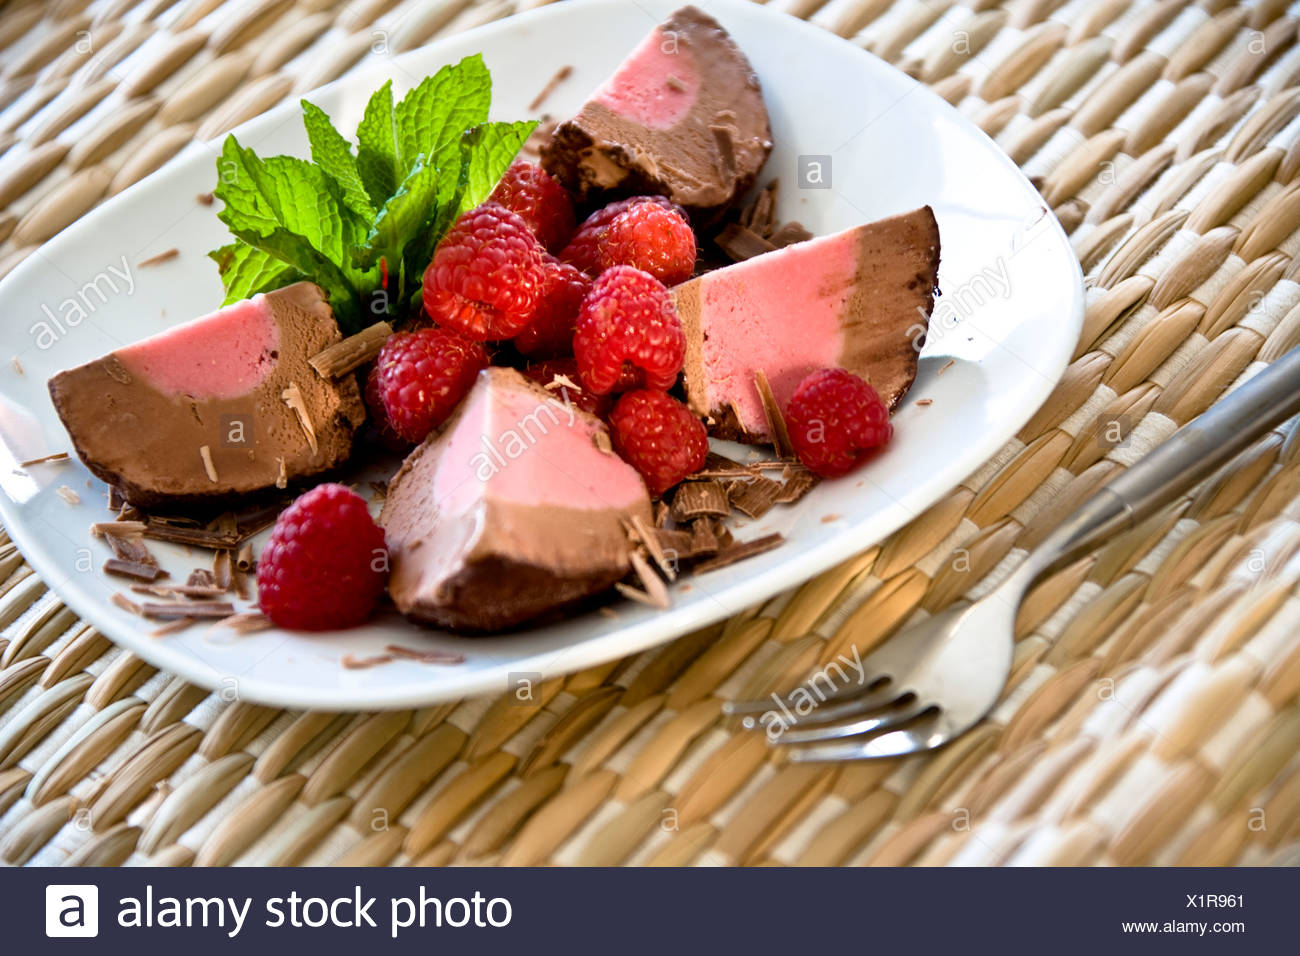 Chocolate Raspberry dessert, white plate and woven background - Stock Image